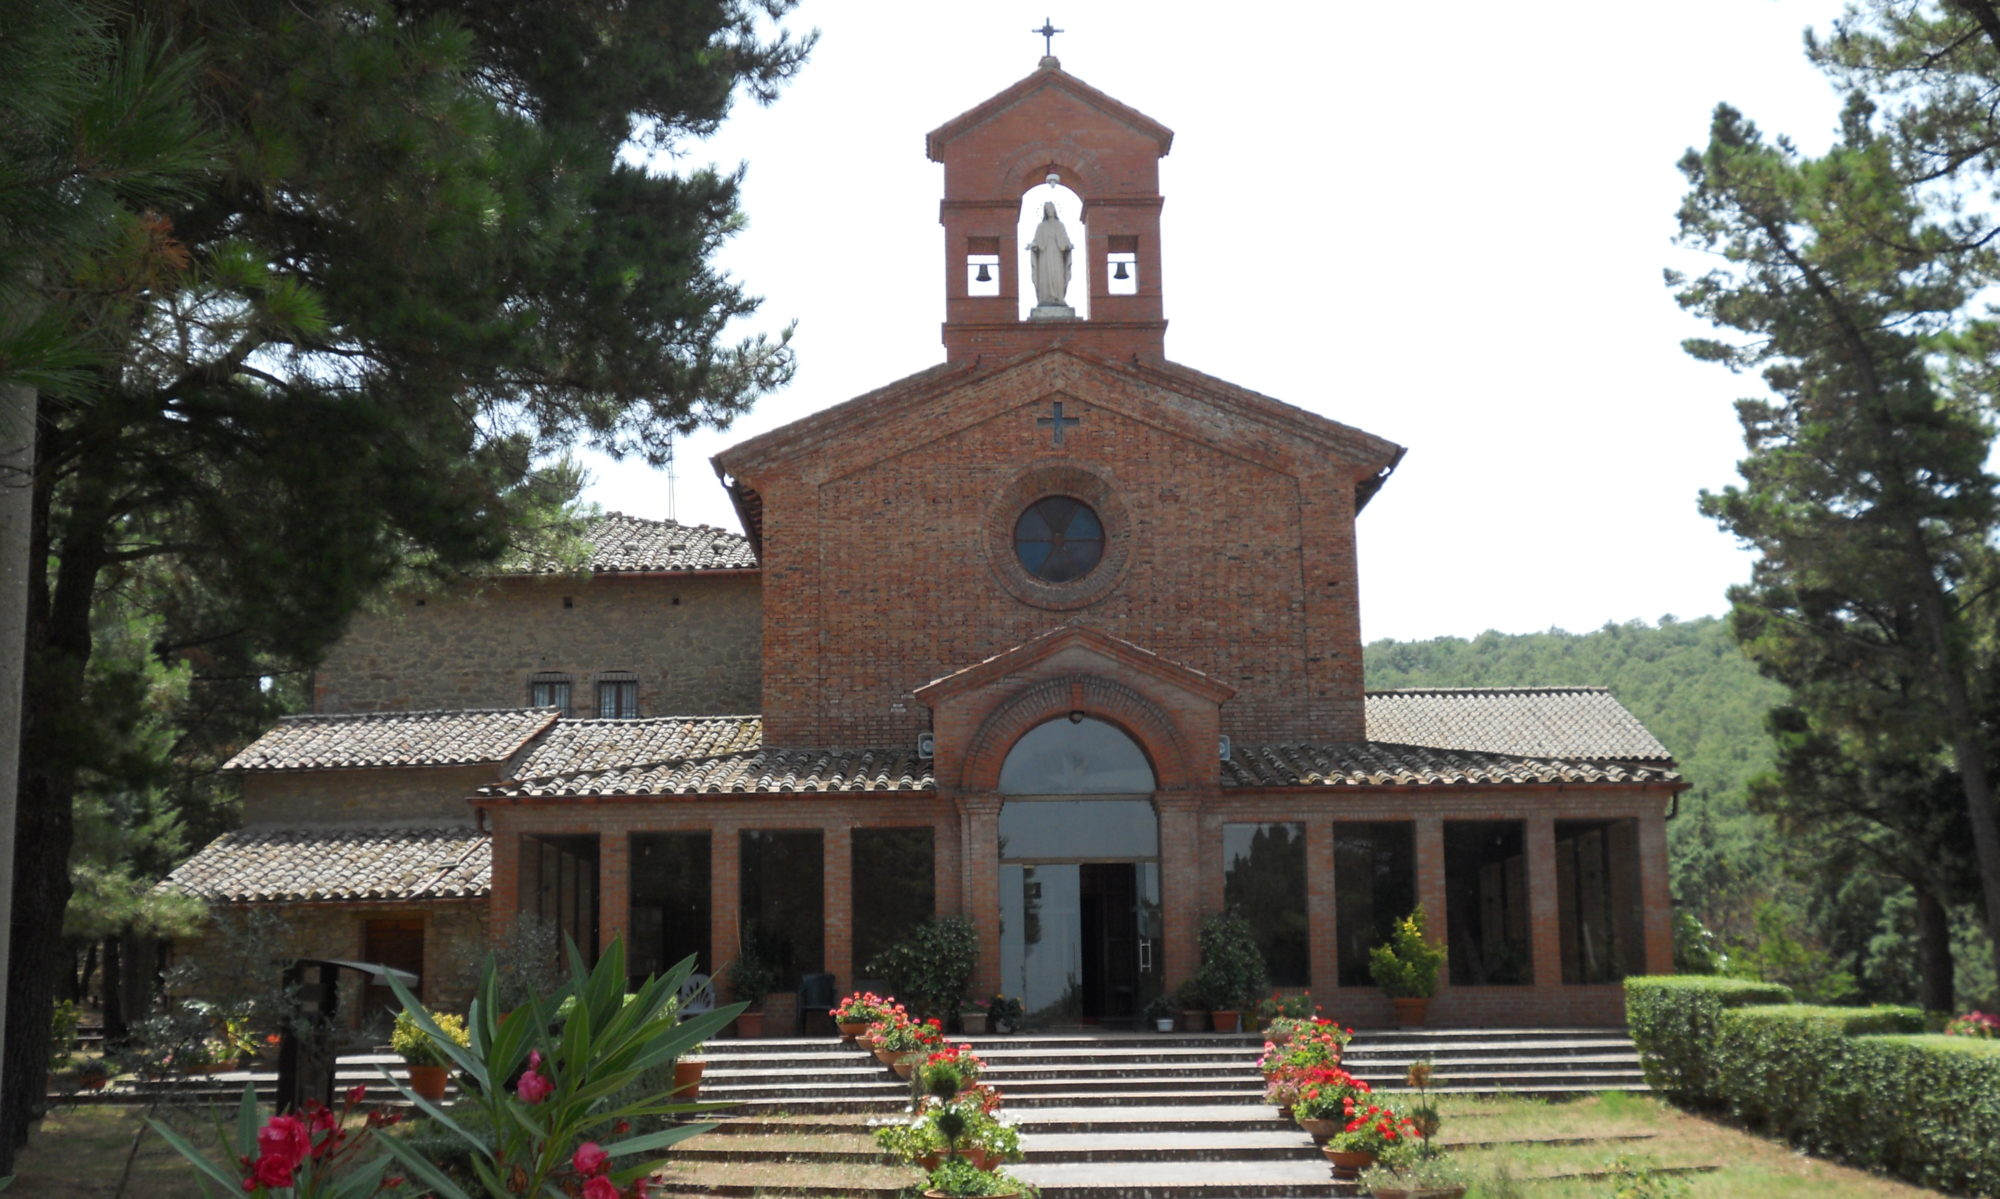 Sanctuary of the Madonna delle Grondici - Panicale